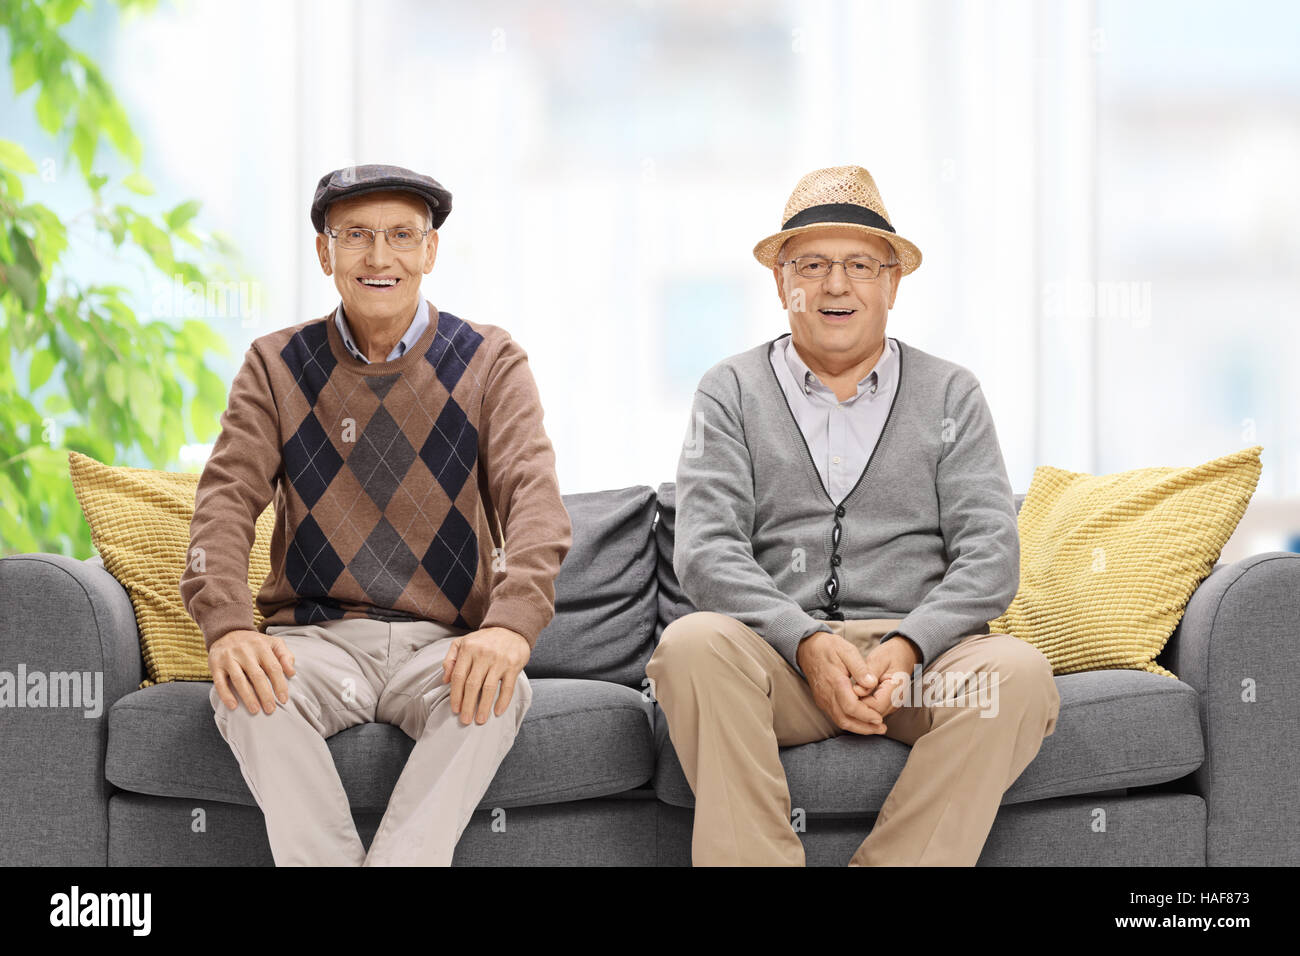 Seniors sitting on a sofa and looking at the camera - Stock Image